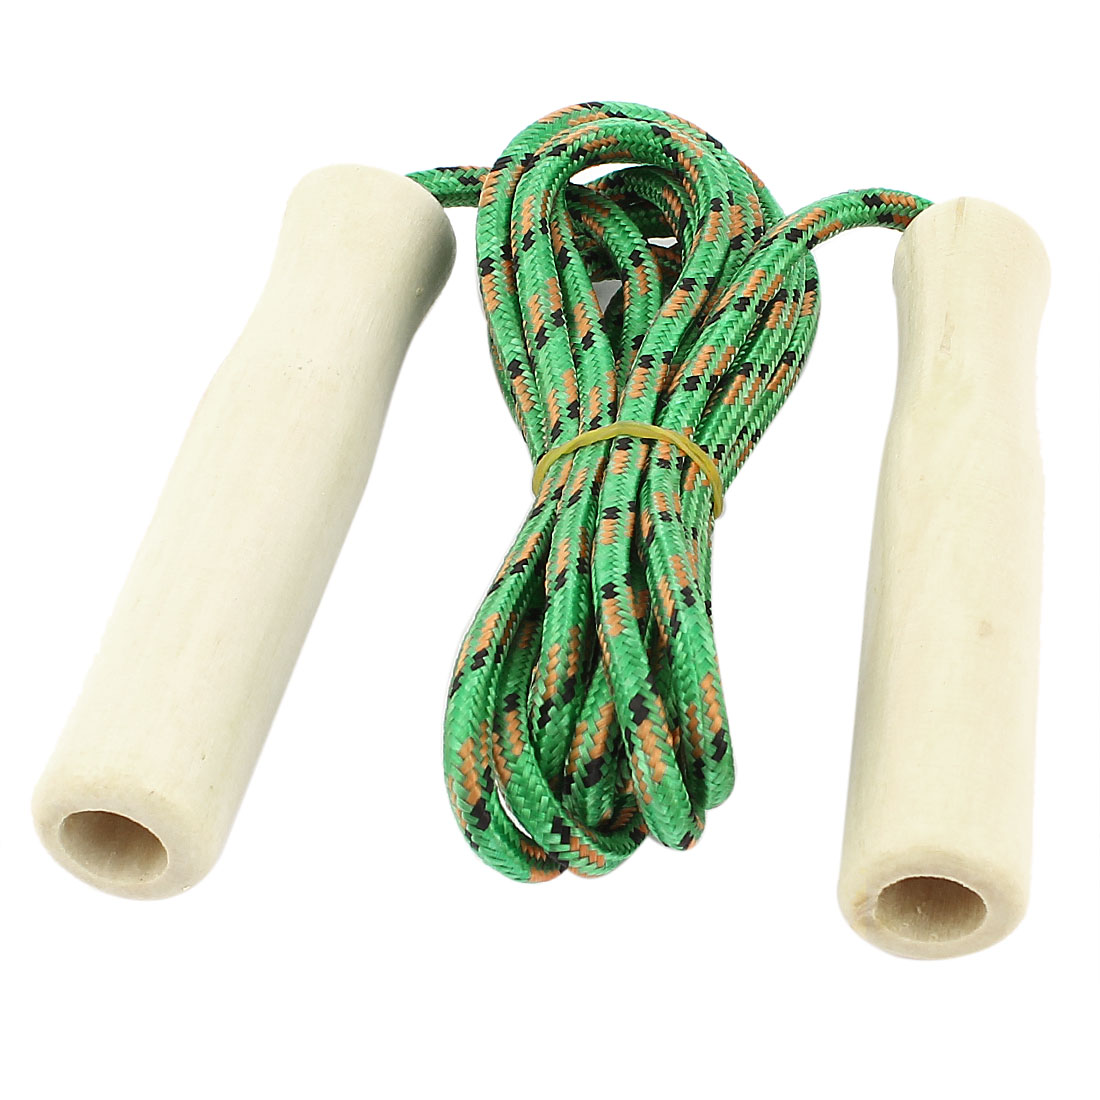 Wooden Handle Sports Exercise Jumping Skipping Rope Green 2 Meter Long